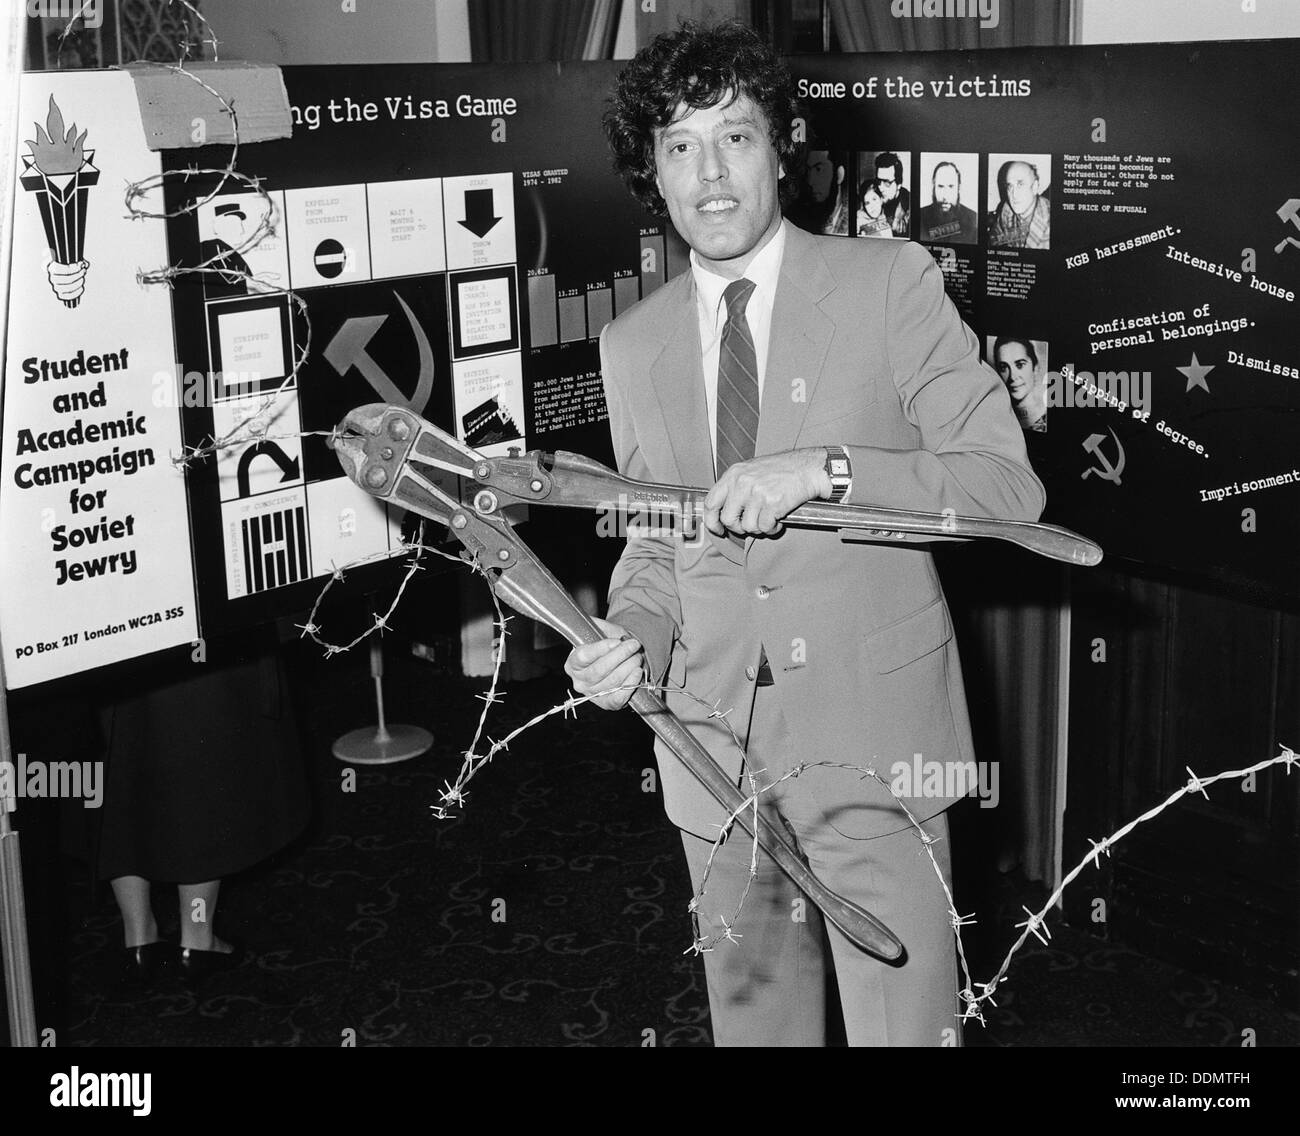 Tom Stoppard (1937-), British Playwright, opening an exhibition for Soviet Jewry. Artist: Sidney Harris Stock Photo